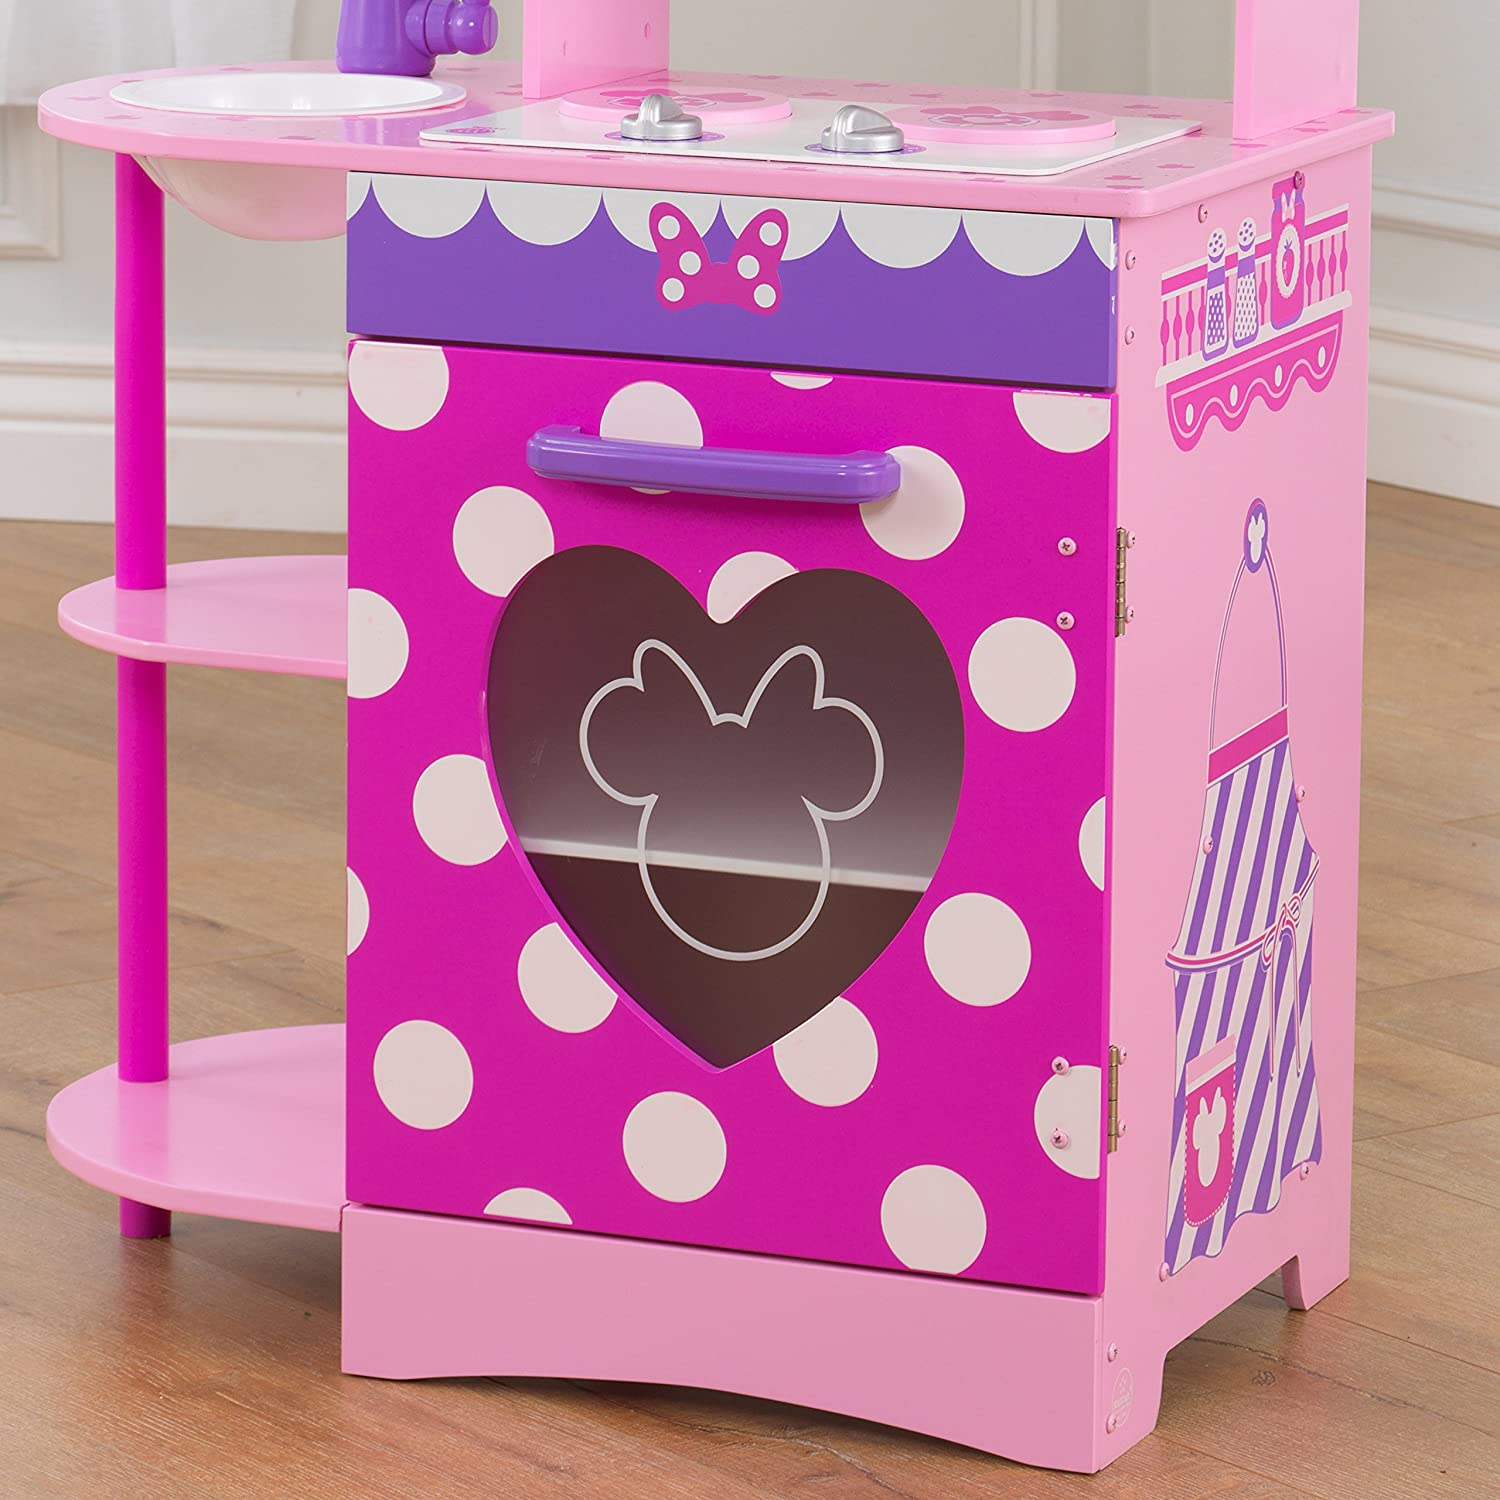 Amazon.com: KidKraft Disney Jr. Minnie Mouse Toddler Kitchen Play ...